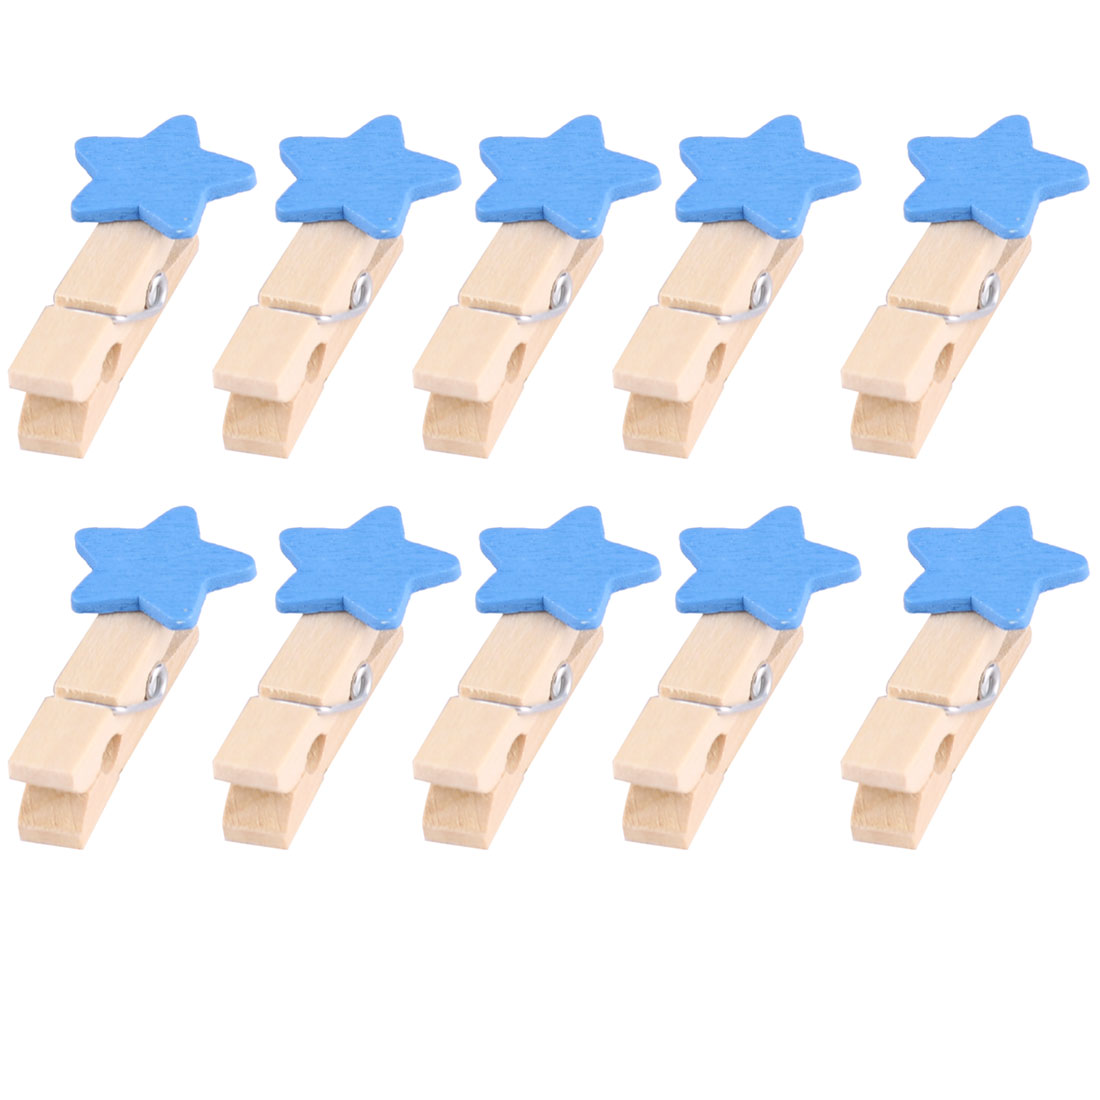 Home Wooden Star Shaped DIY Craft Photo Picture Post Card Decor Clip Blue 10pcs